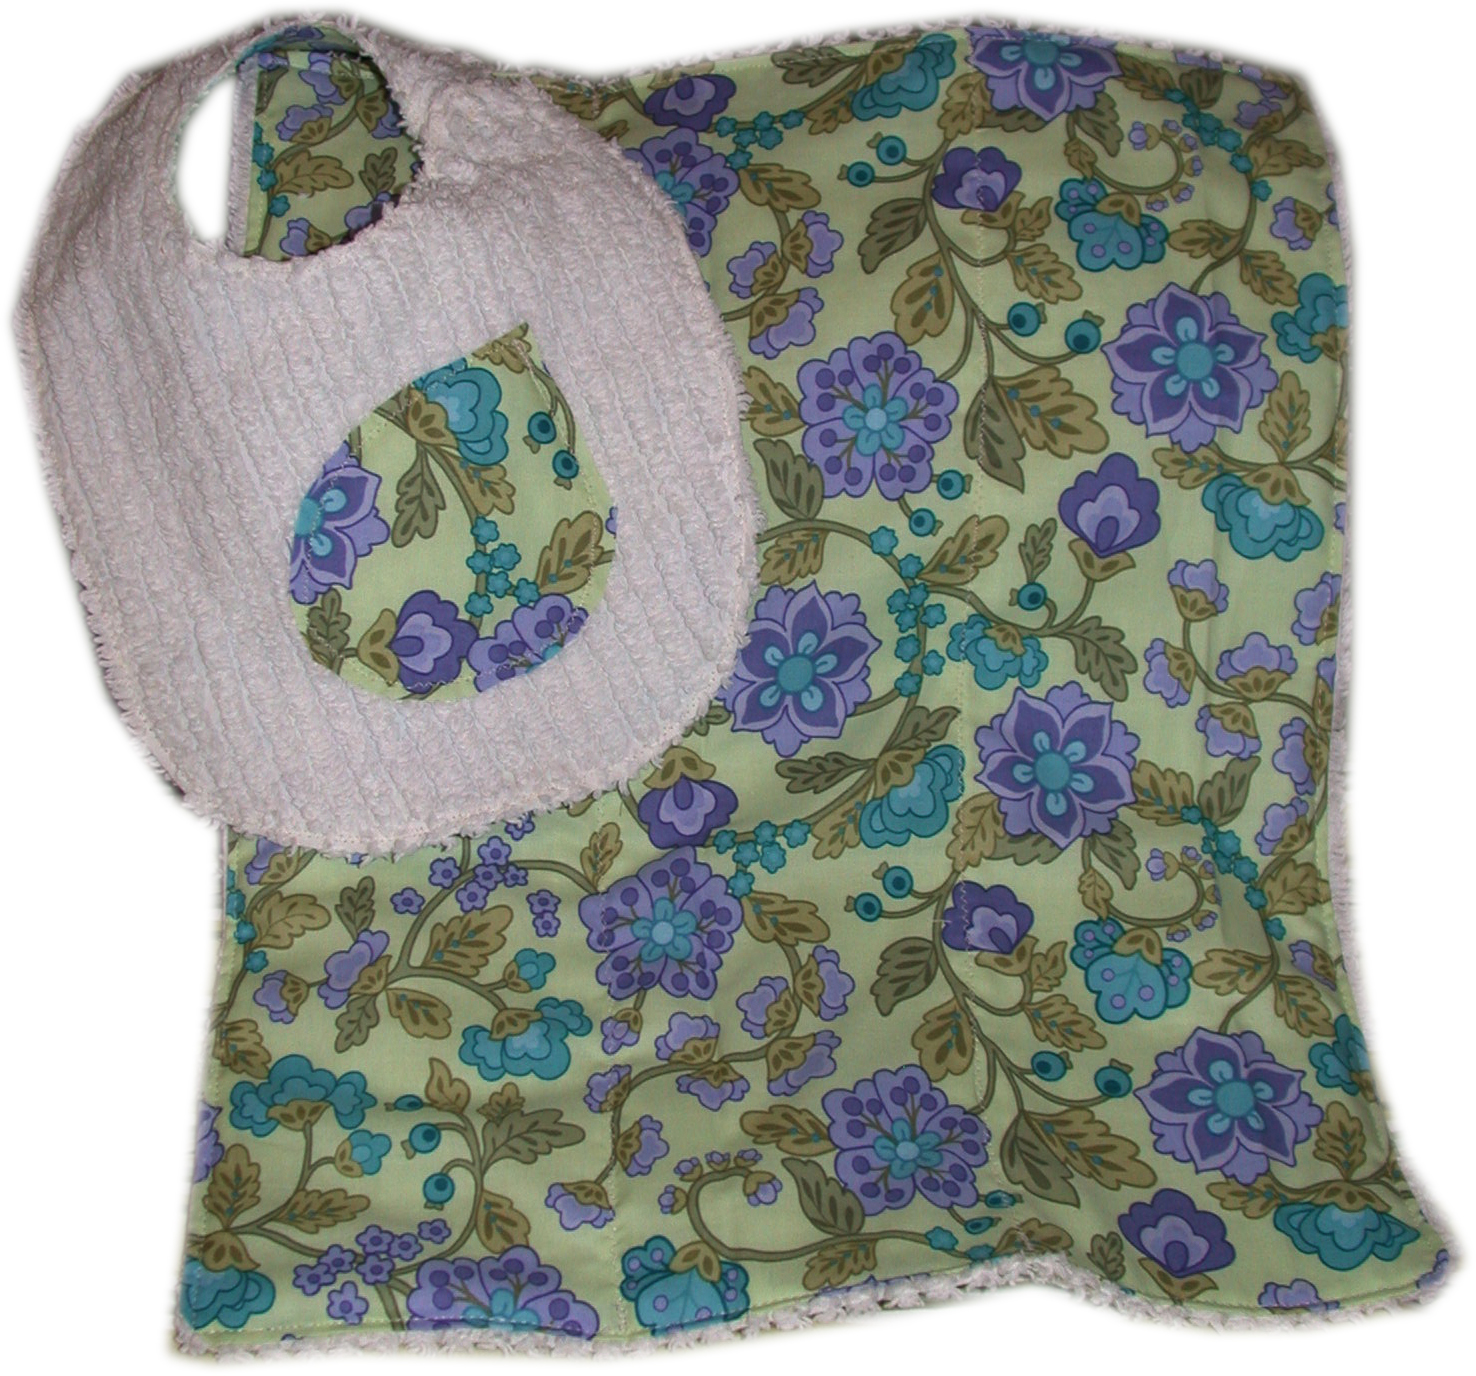 Set of Reversible Chenille Bib and Burp Cloth Green Violet TDBBS0016 15 00 Tiddle Diddle Handmade Shoppe every design is unique because unique is gift from tiddlediddle.com